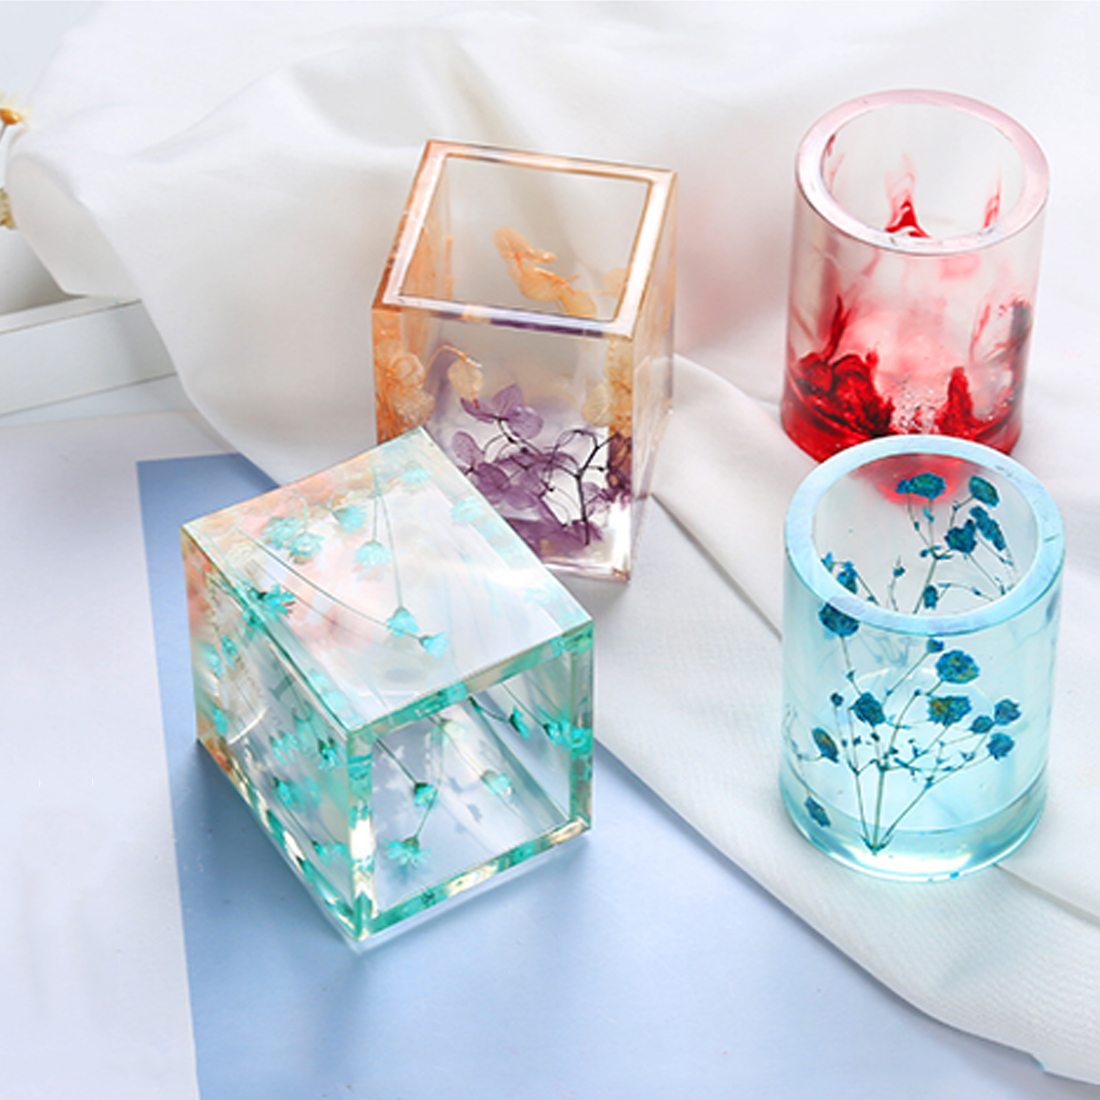 Transparent Silicone Mould Dried Flower Resin Decorative Craft DIY Storage Pen Holder Mold Epoxy Resin Molds For Jewelry